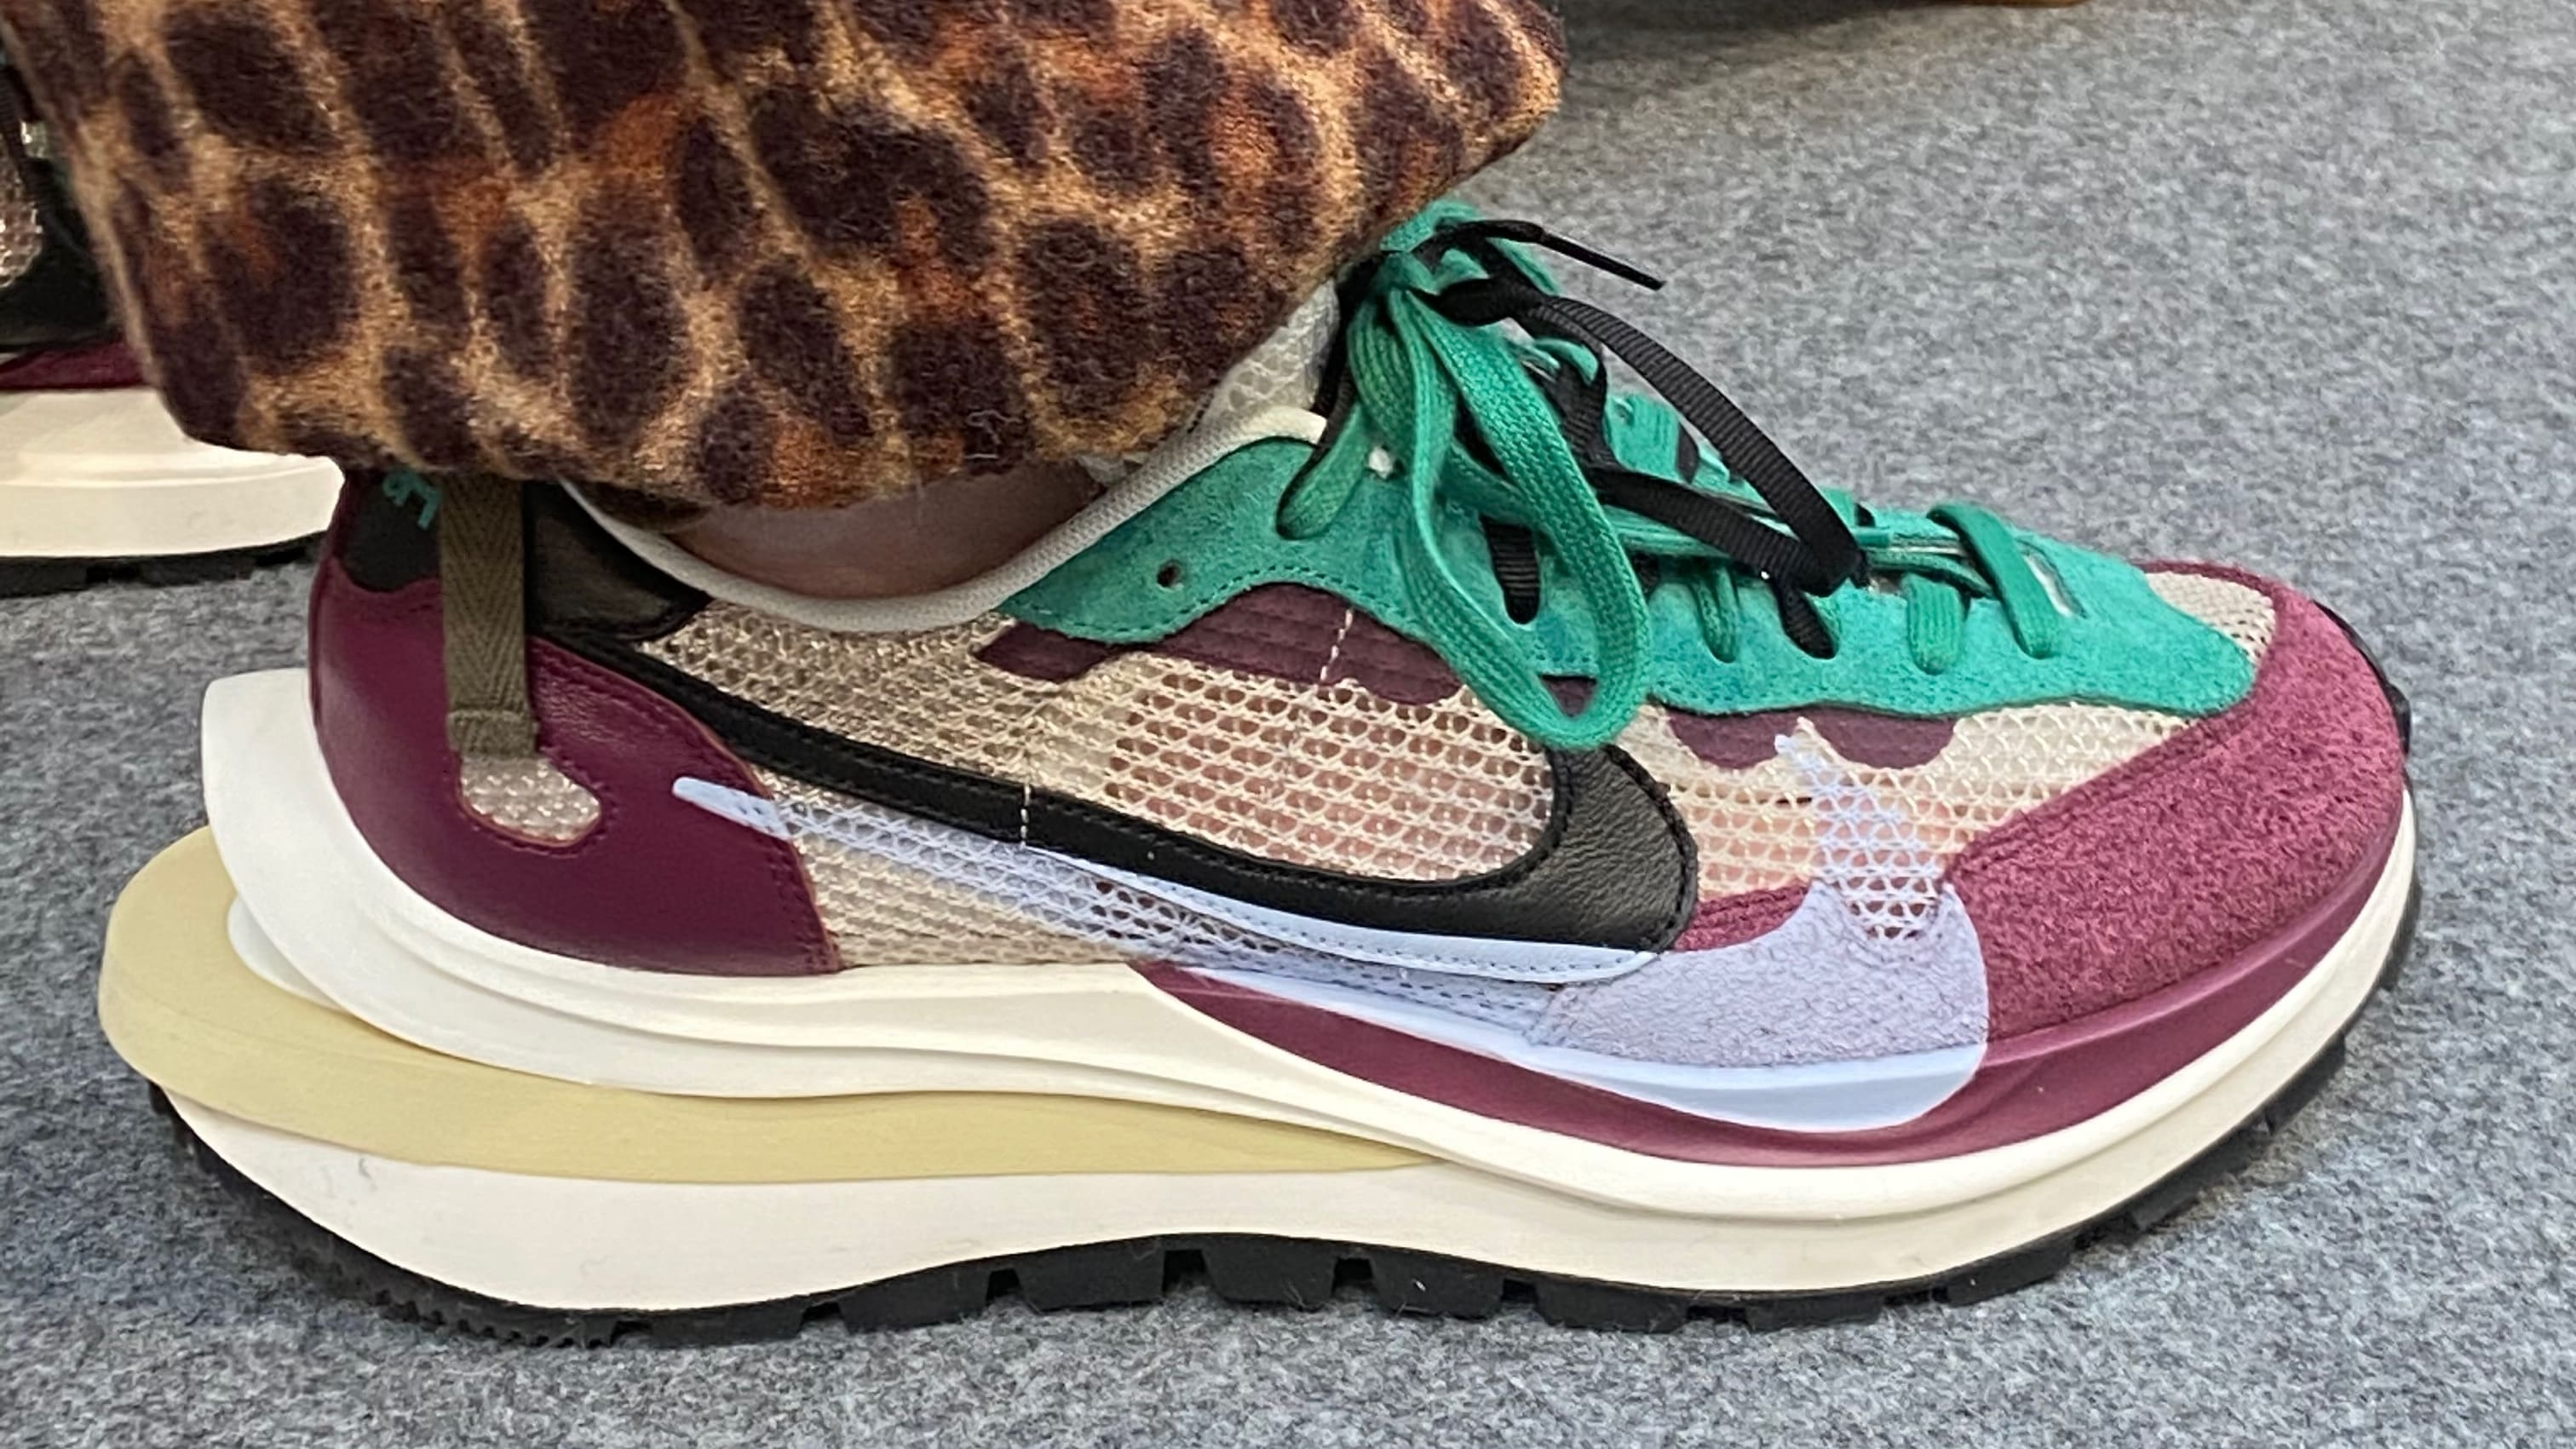 sacai-nike-vapor-pegasus-first-look-paris-fashion-week-2020